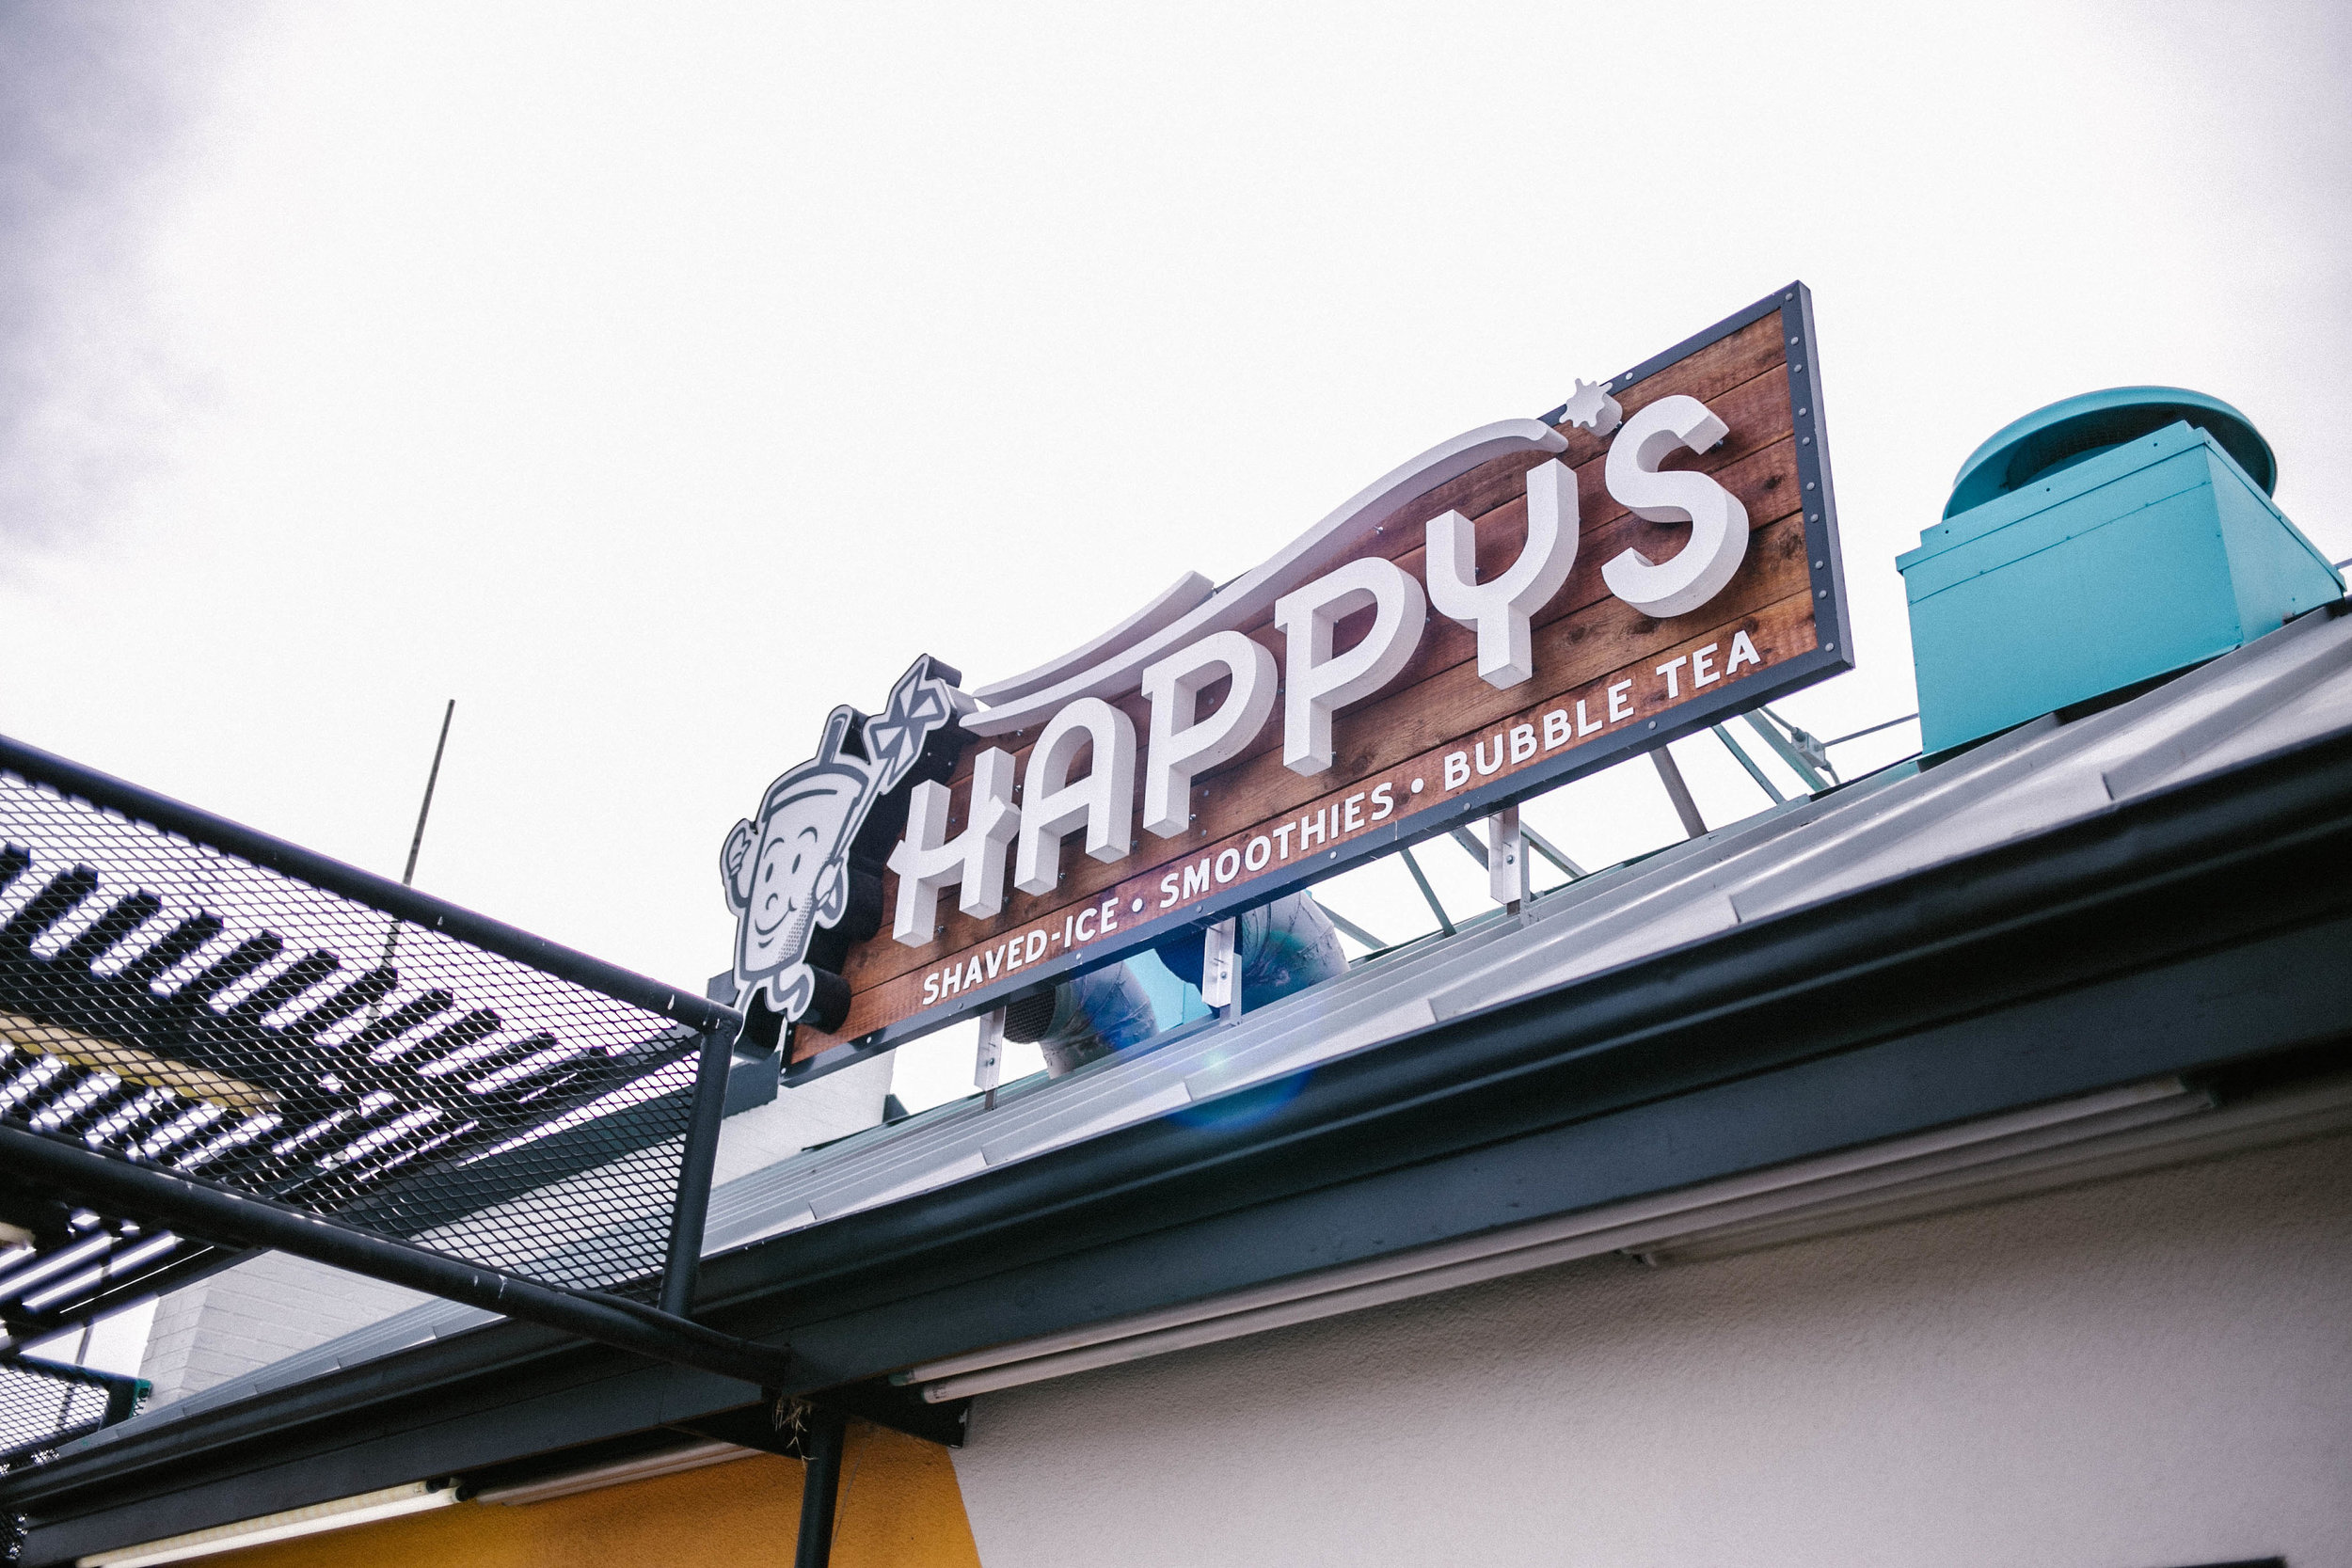 About Happys - Tyler and Kaydi started Happy's as a food truck in Denton, TX. Lubbock called them back home and Tyler and Kaydi decided to be the first to offer bubble tea in their hometown. With all sorts of flavors available, Happy's is making Lubbock a happier place one shaved ice, smoothie, and bubble tea at a time!